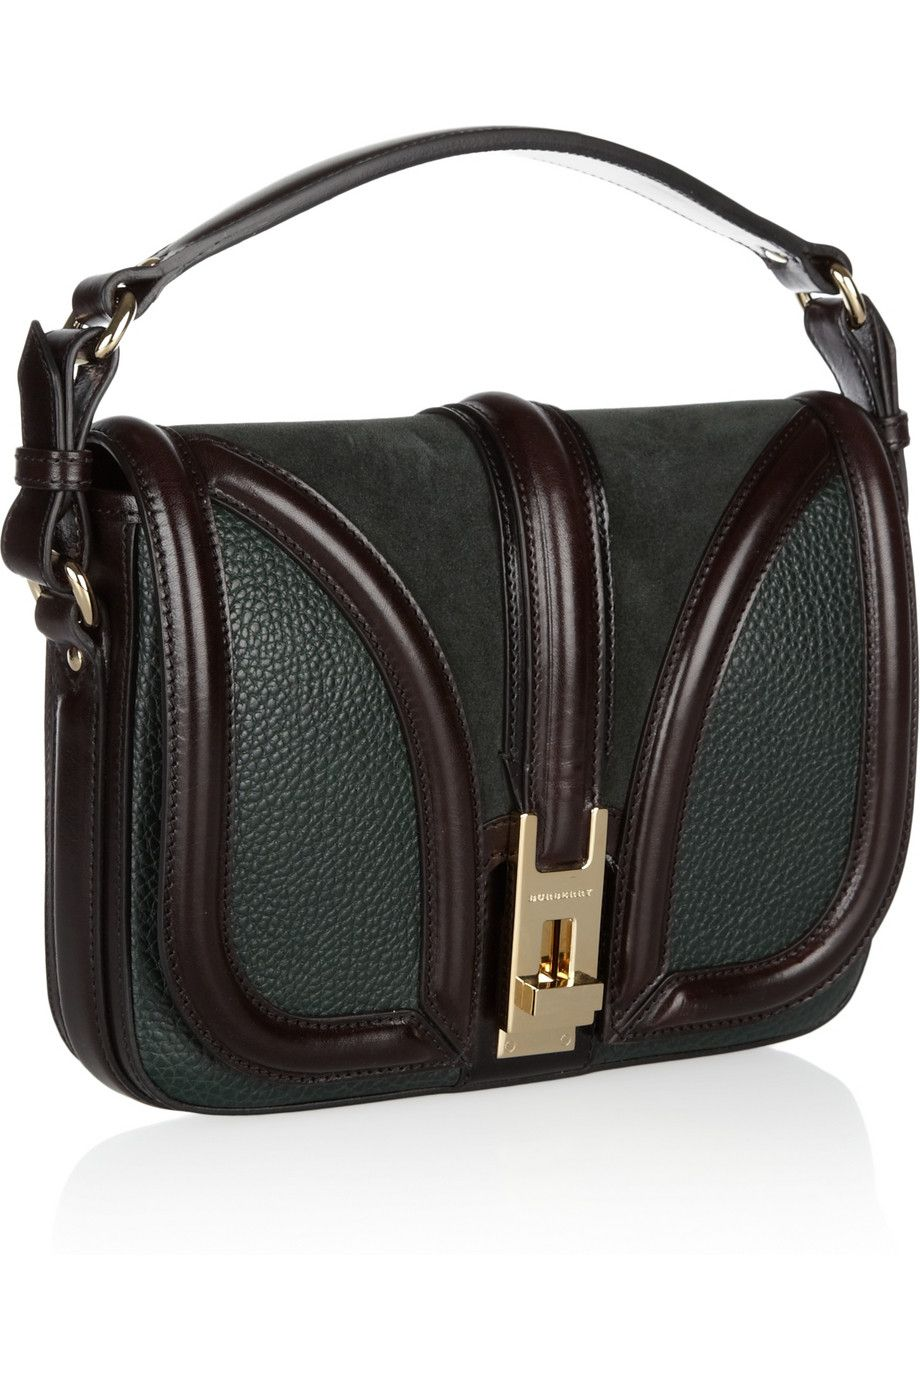 e9ca66ce4d60 Burberry Textured-leather and suede shoulder bag